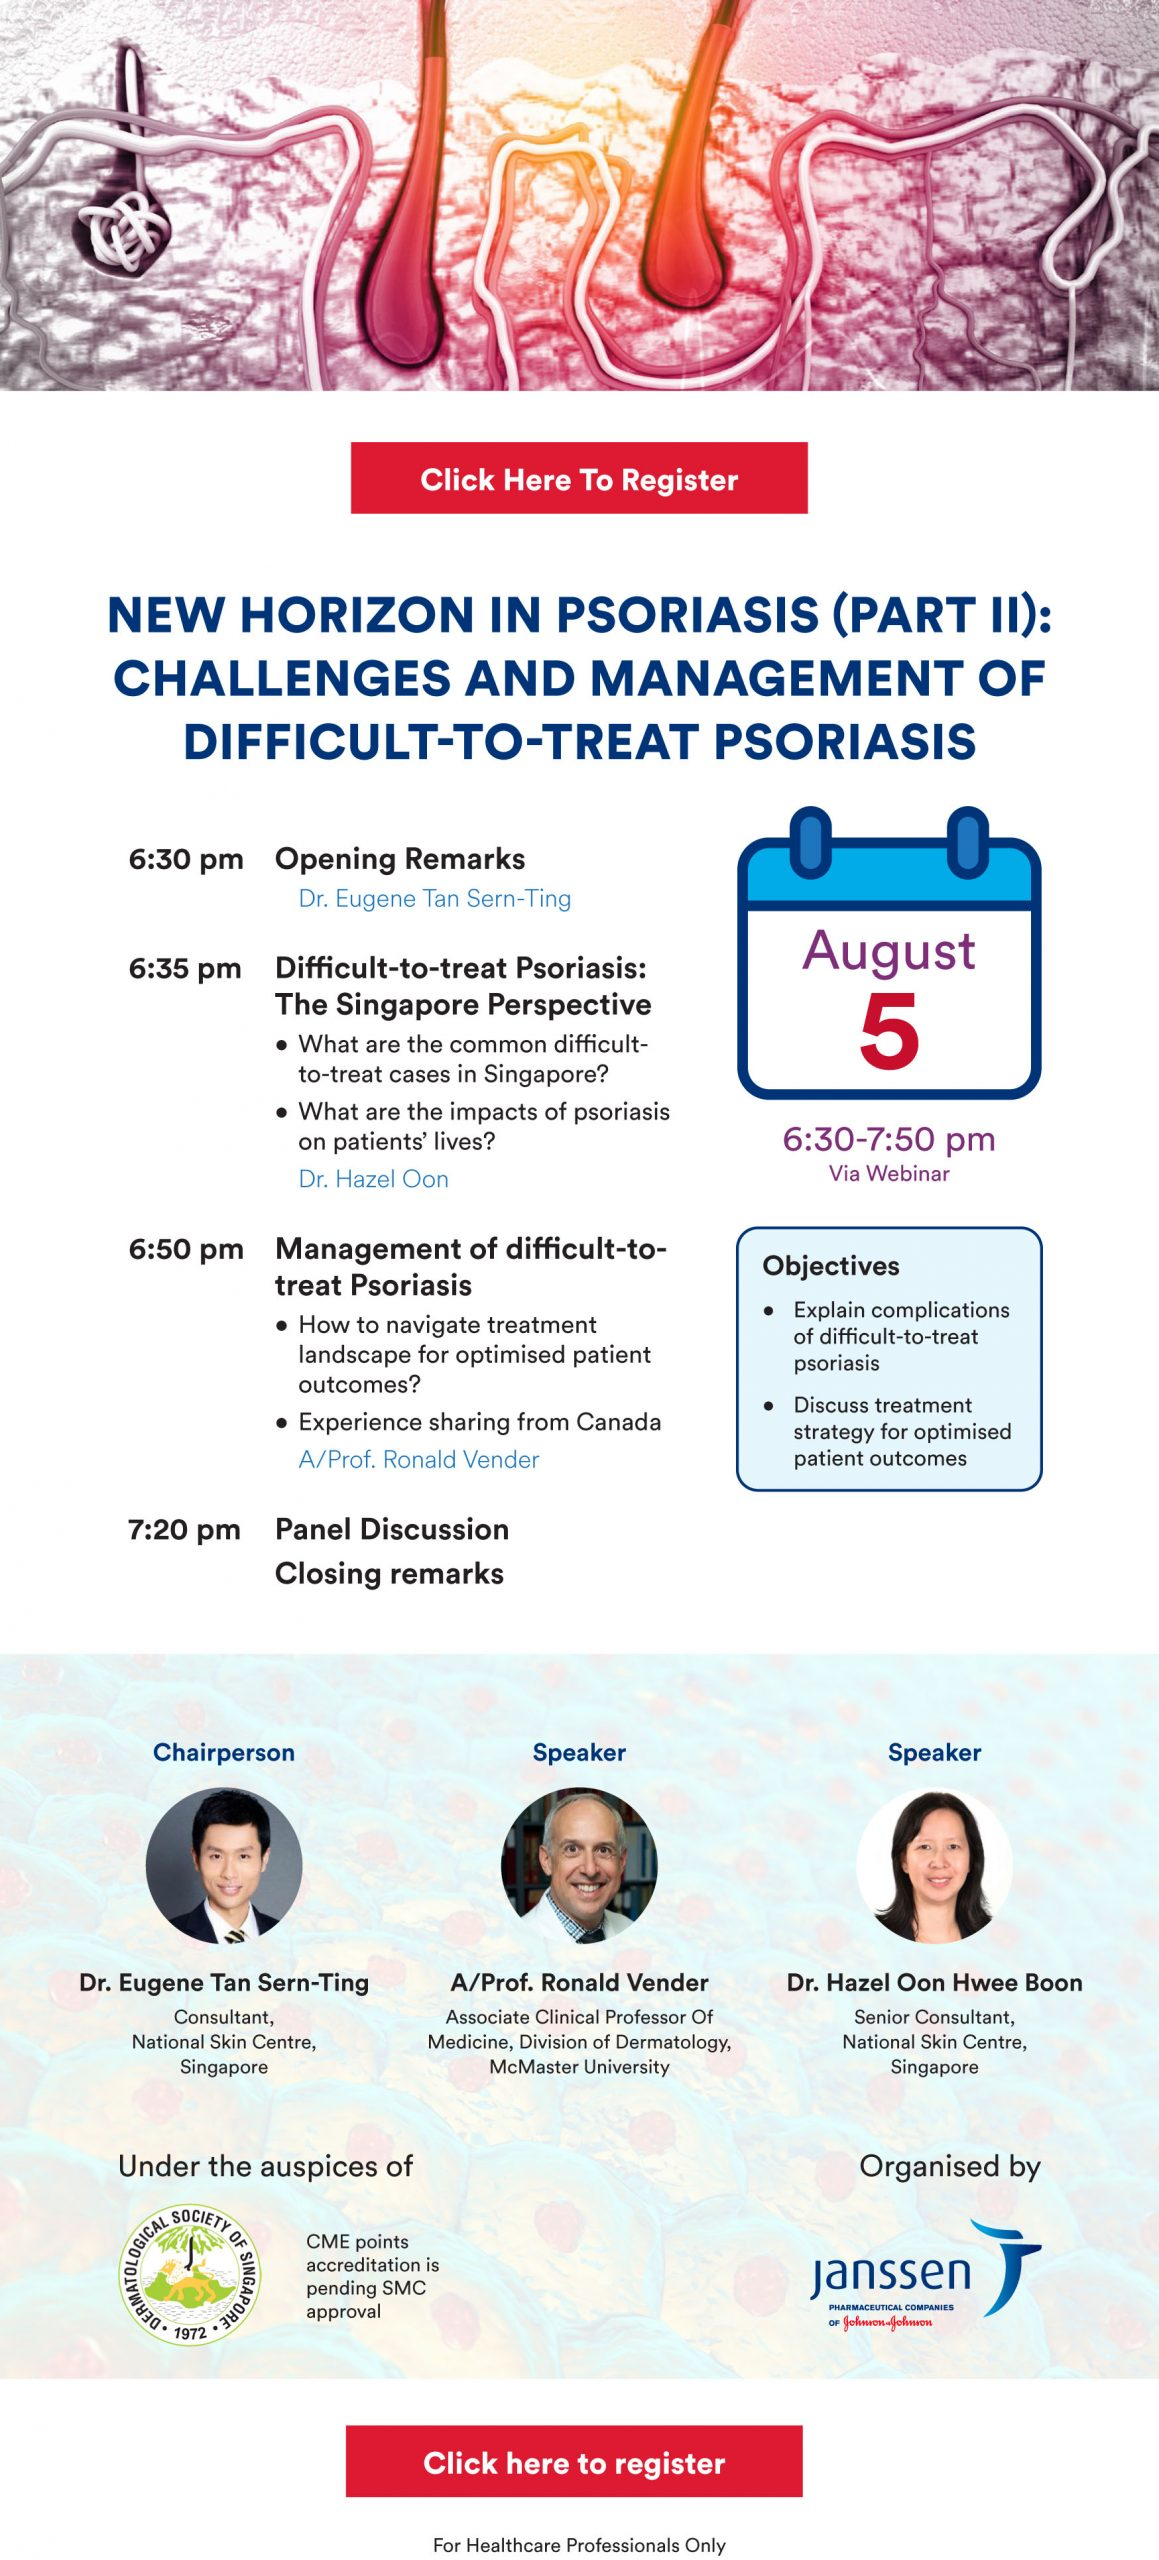 New Horizon in Psoriasis II:  Challenges and Management of Difficult-to-treat Psoriasis @ Virtual